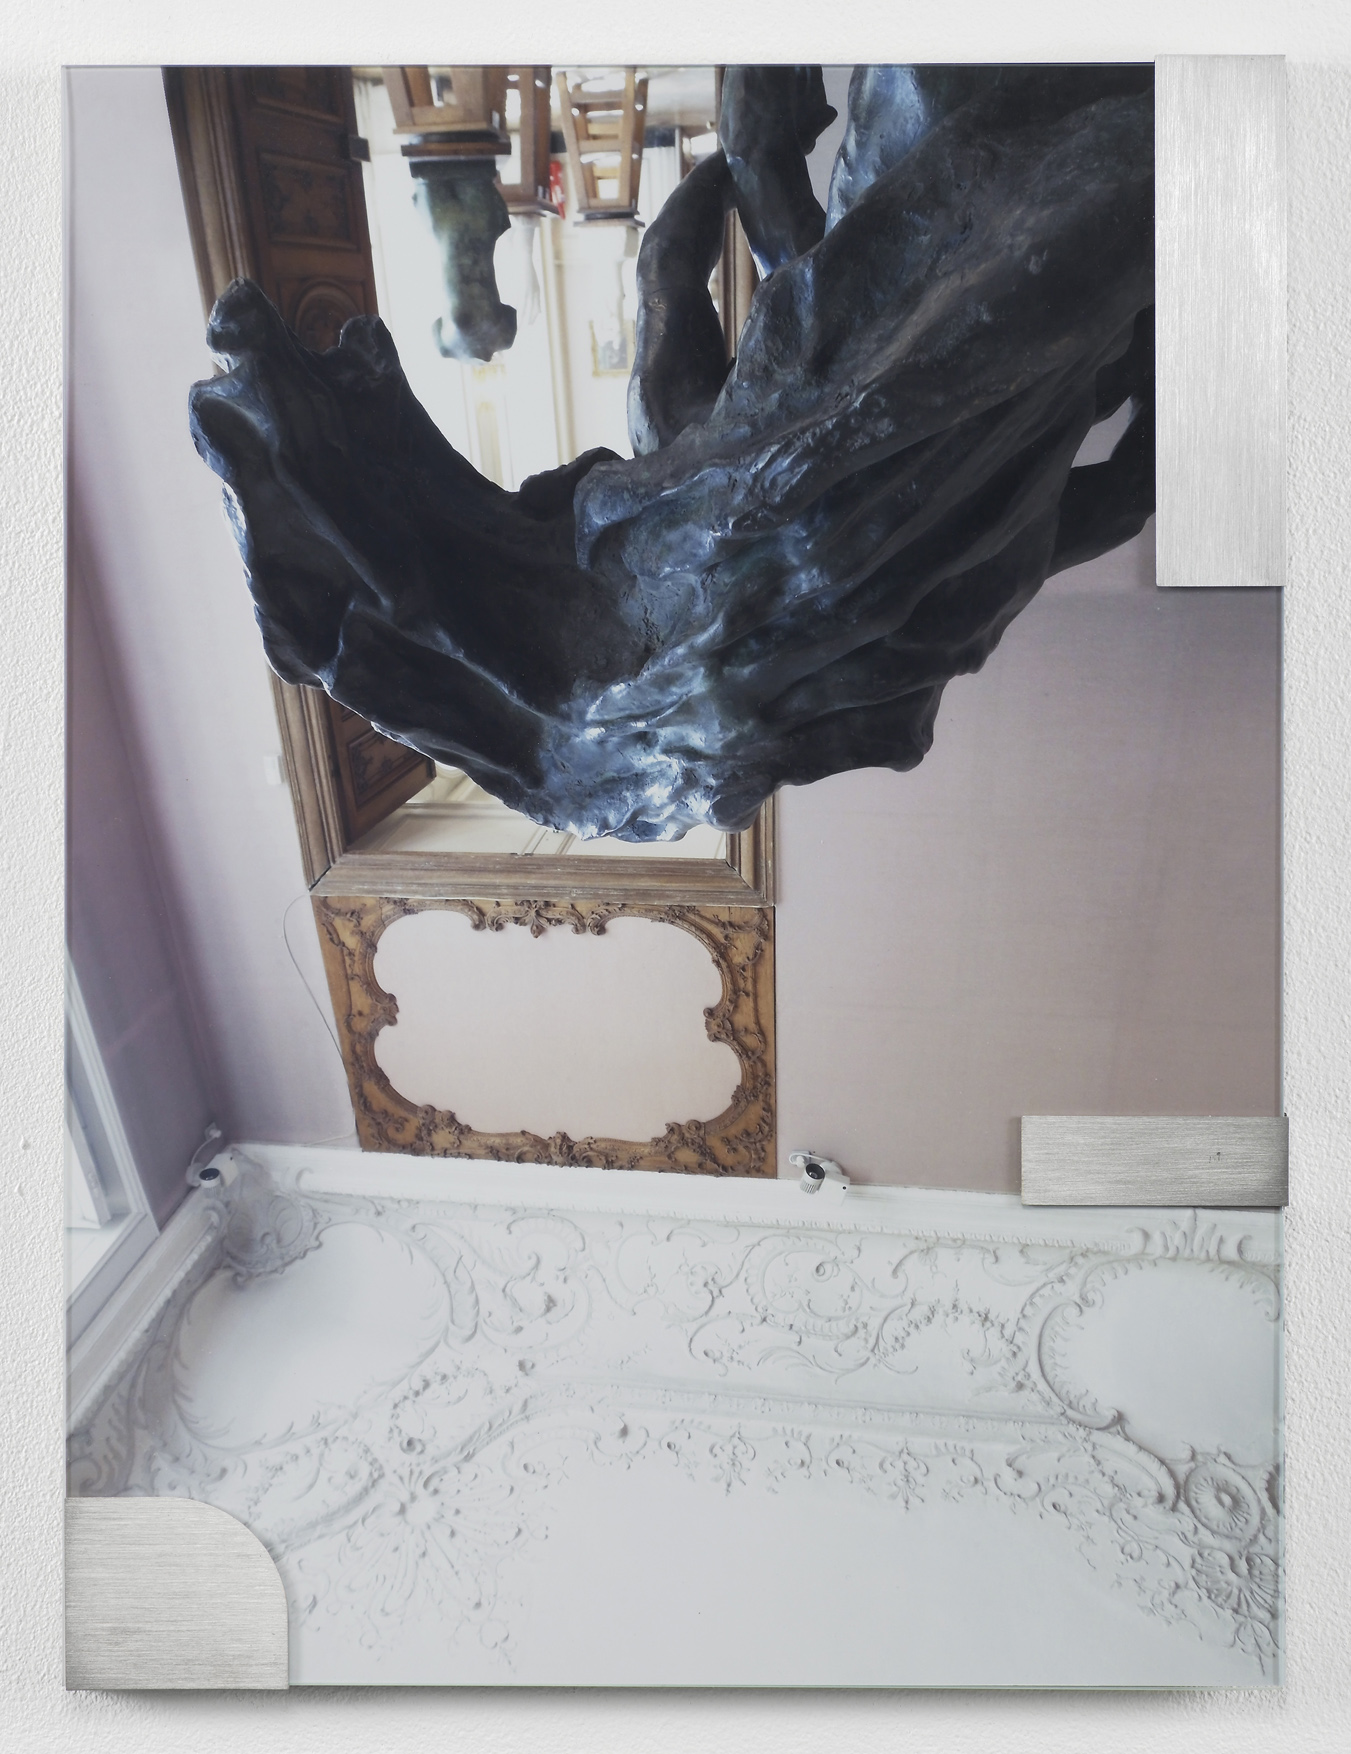 Buhuu Suite (Upside down cloak) 2011 C-print, stainless steel clips, clip frame 40 x 30 x 1.5 cm / 15.7 x 11.8 x 0.6 in